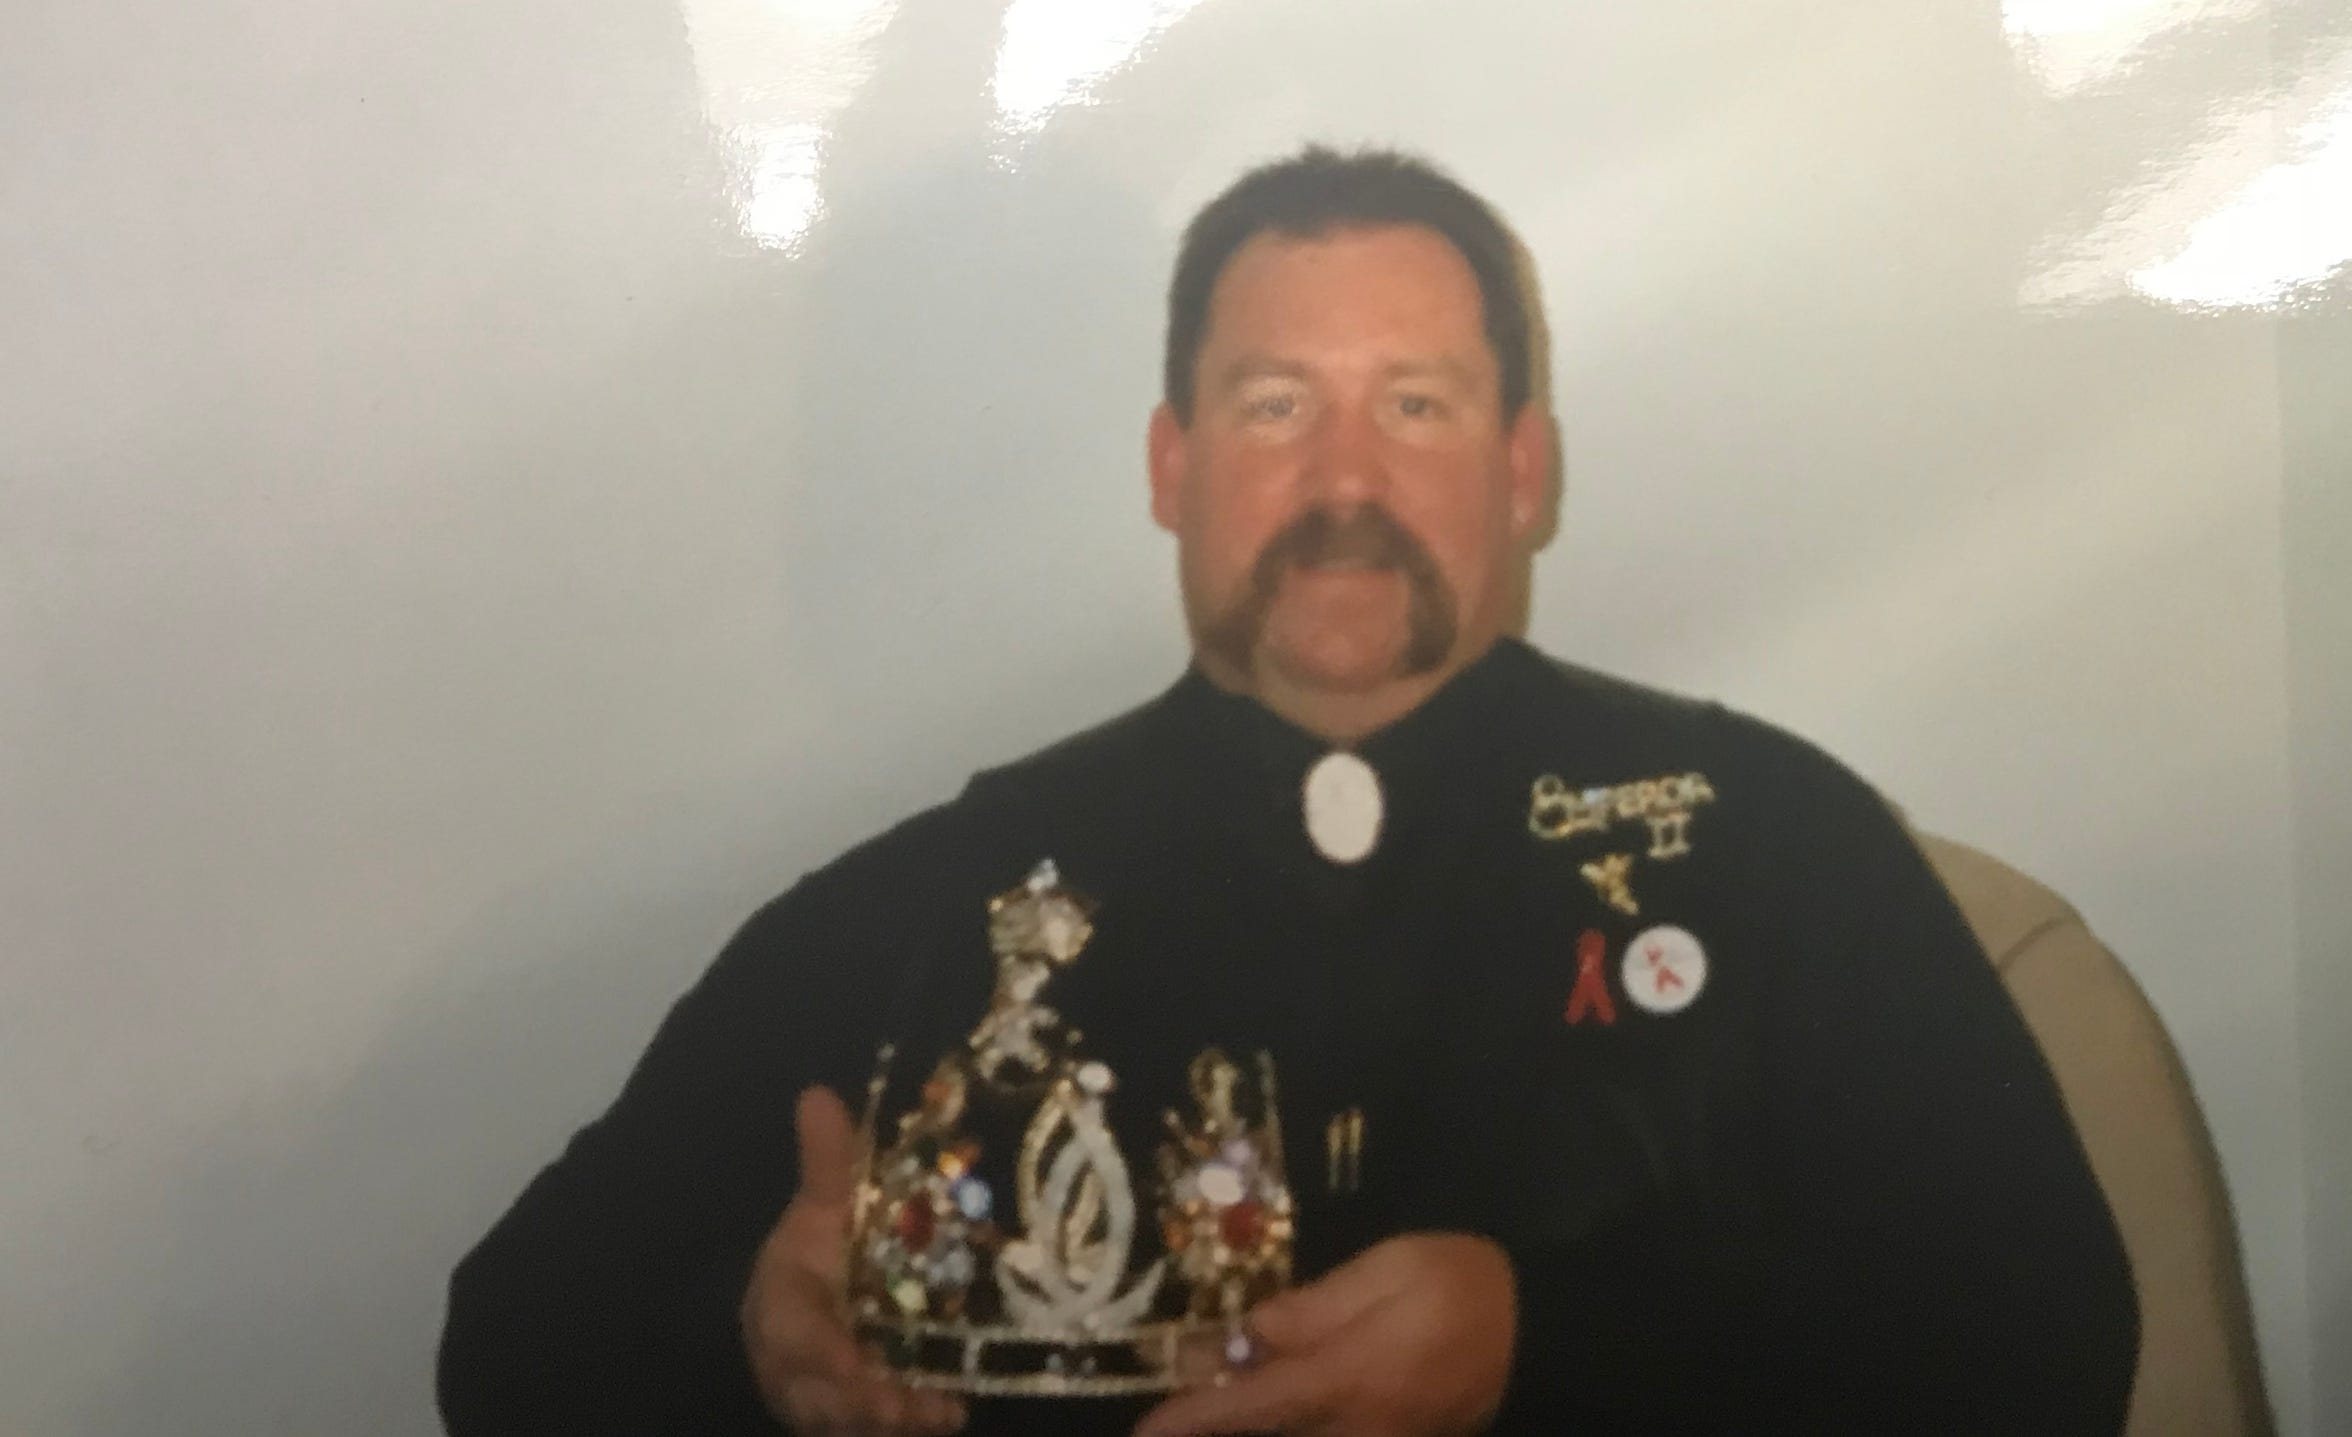 Tom Hinton with his crown as he steps into the role of Emperor II with The Imperial Heart of the Golden Circle Empire.